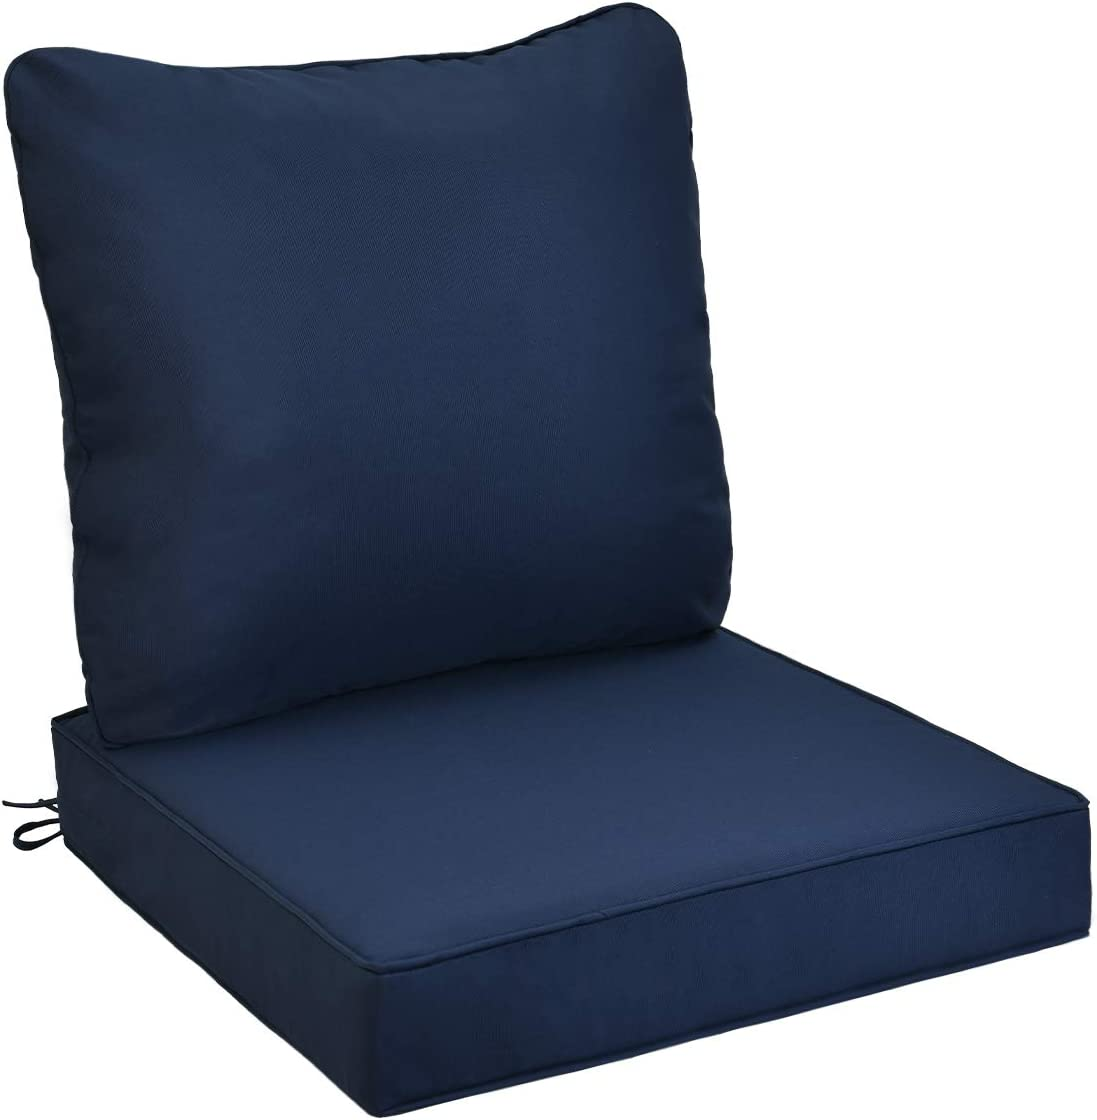 AAAAAcessories Outdoor/Indoor Water-Resistant Deep Seat Chair Cushion, Replacement Patio Furniture Cushions, 24 x 24 x 5 Inch, Blue